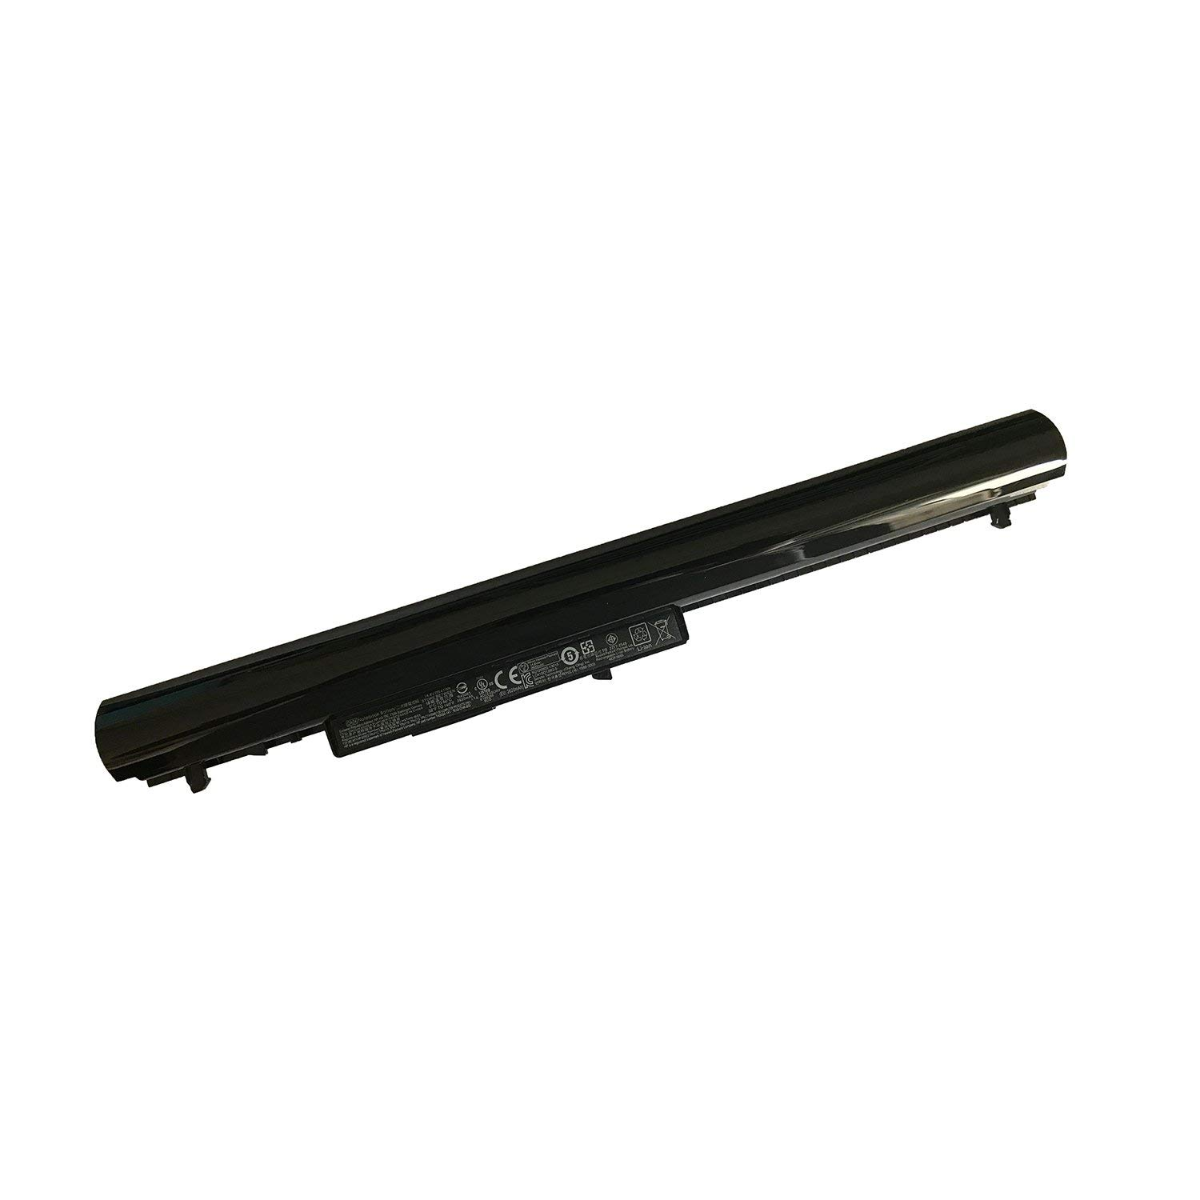 Μπαταρία Laptop - Battery for HP 15-D001SH 15-D001SI 15-D001SIA 15-D001SK 15-D001SL 15-D001SR 15-D001SS 15-D001SX 15-D001TU OEM Υψηλής ποιότητας (Κωδ.1-BAT0002)